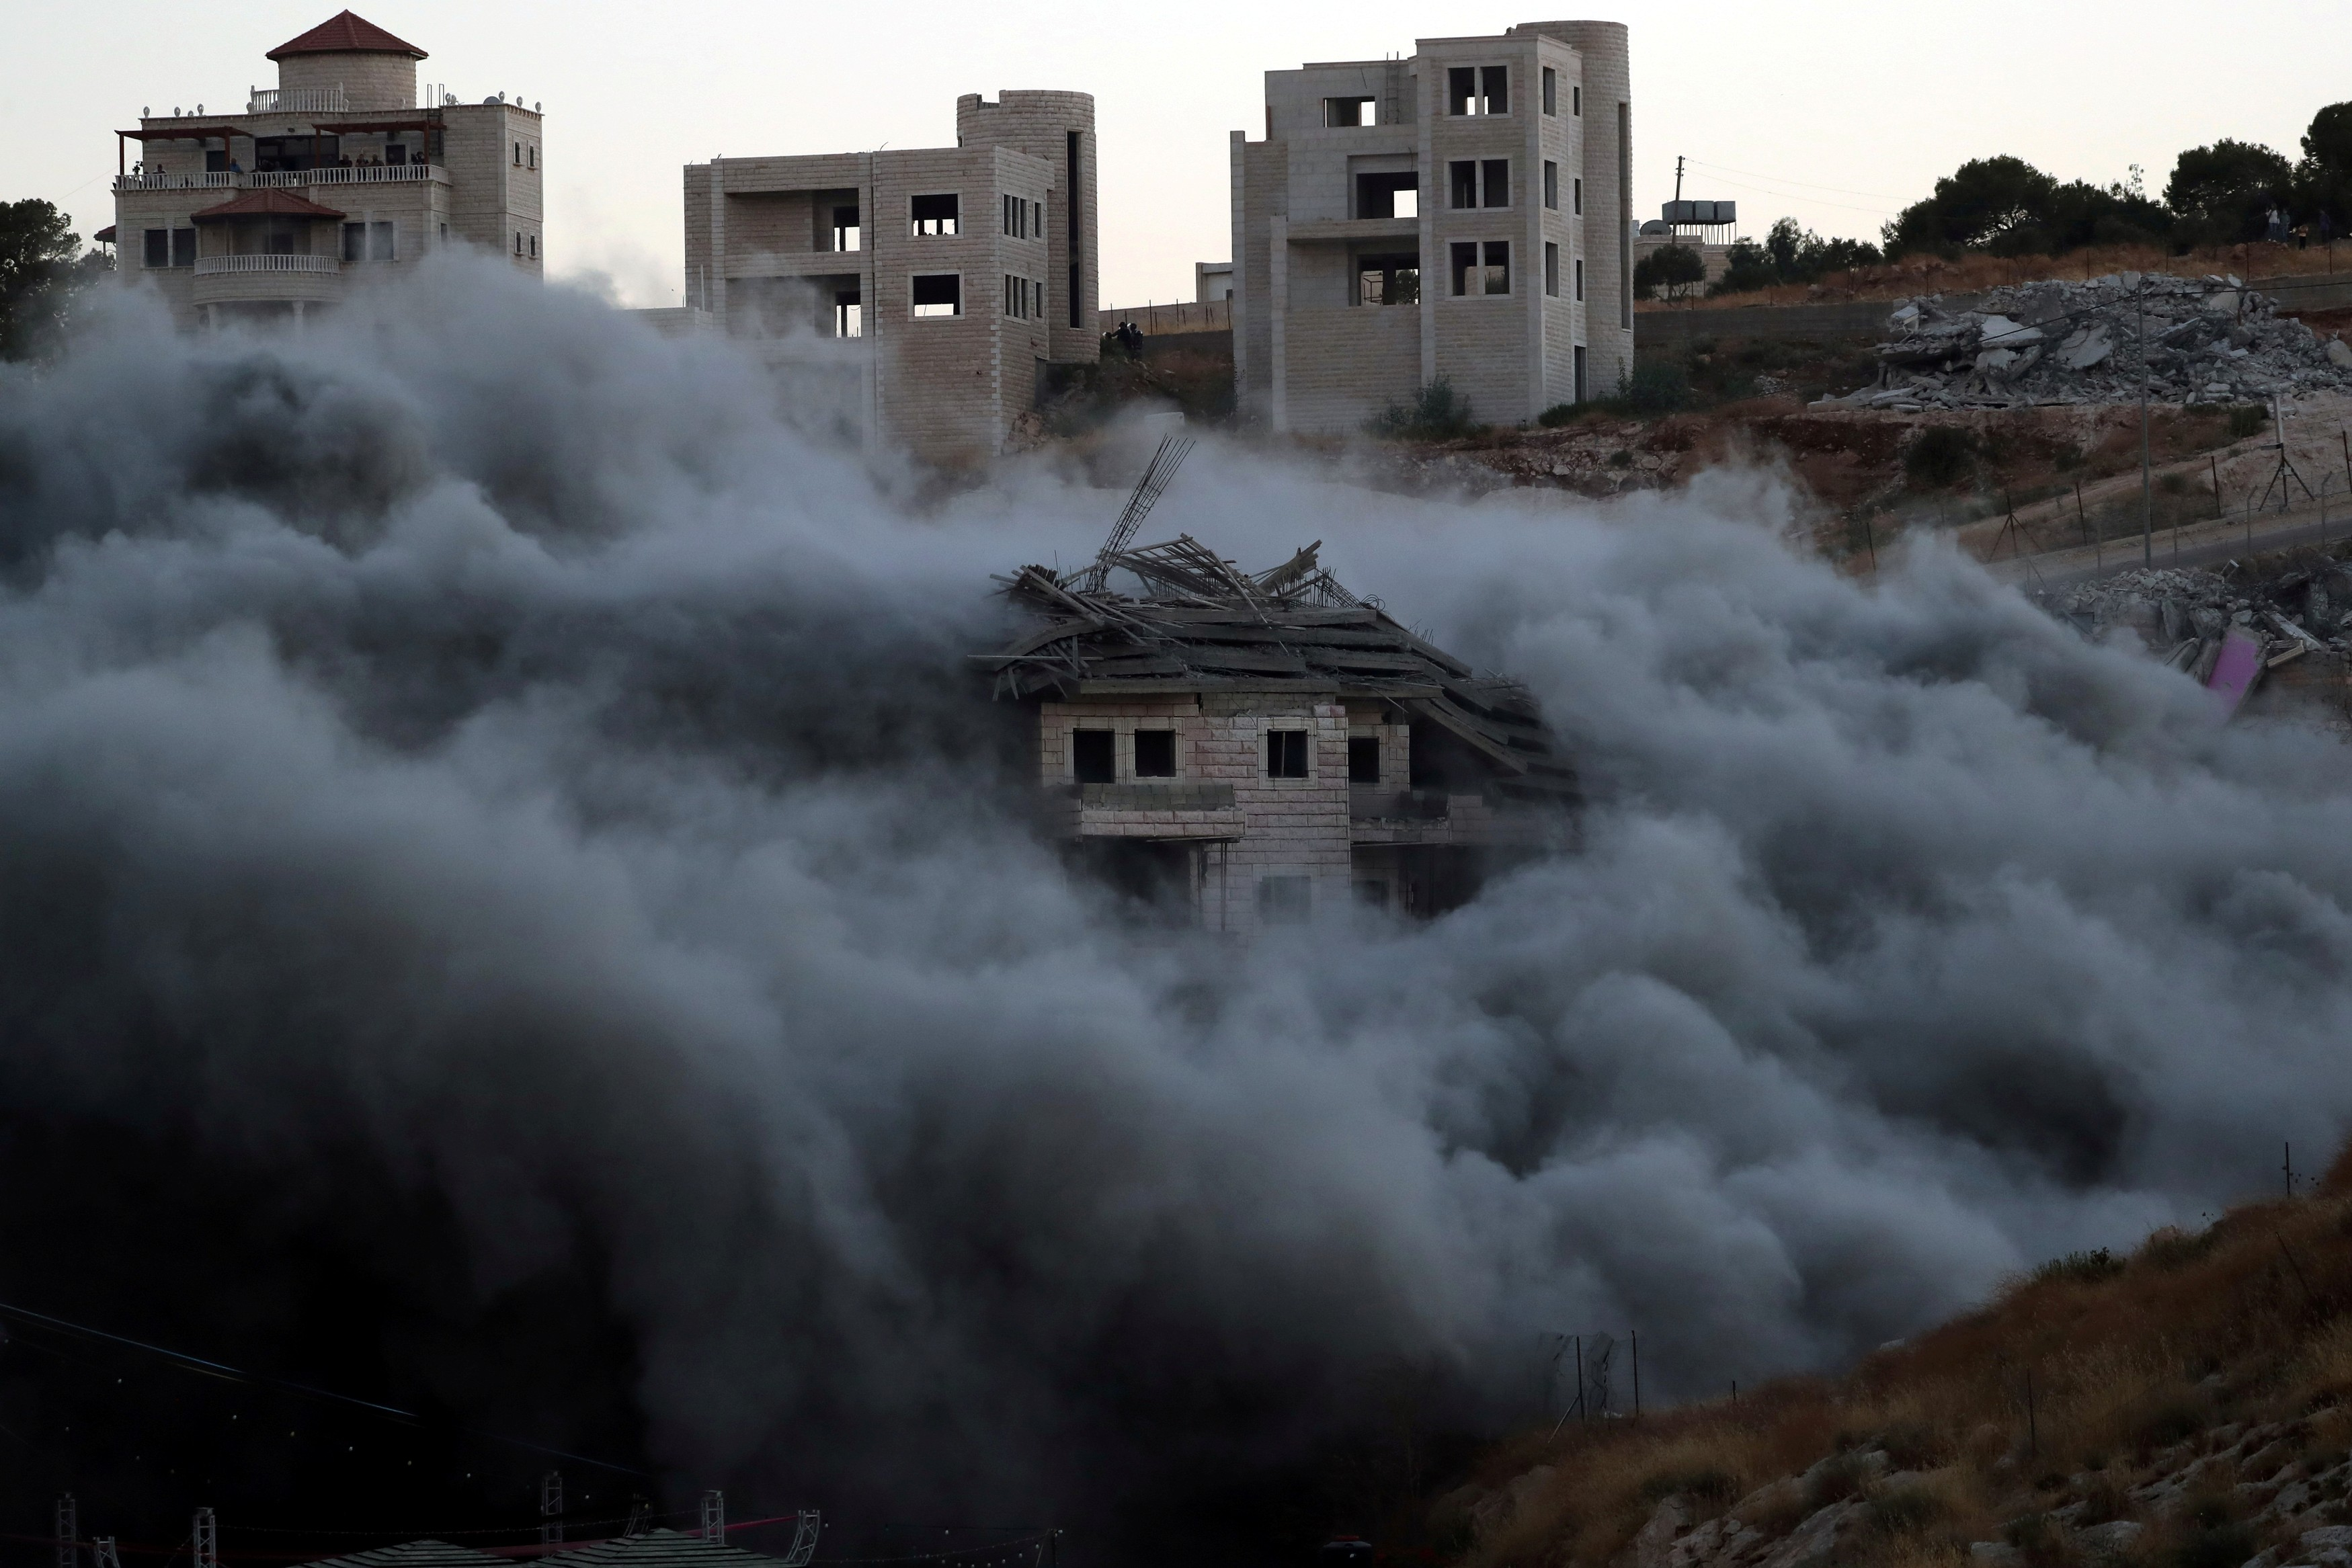 International agencies call Israeli demolition of Palestinian homes illegal - The Washington Post